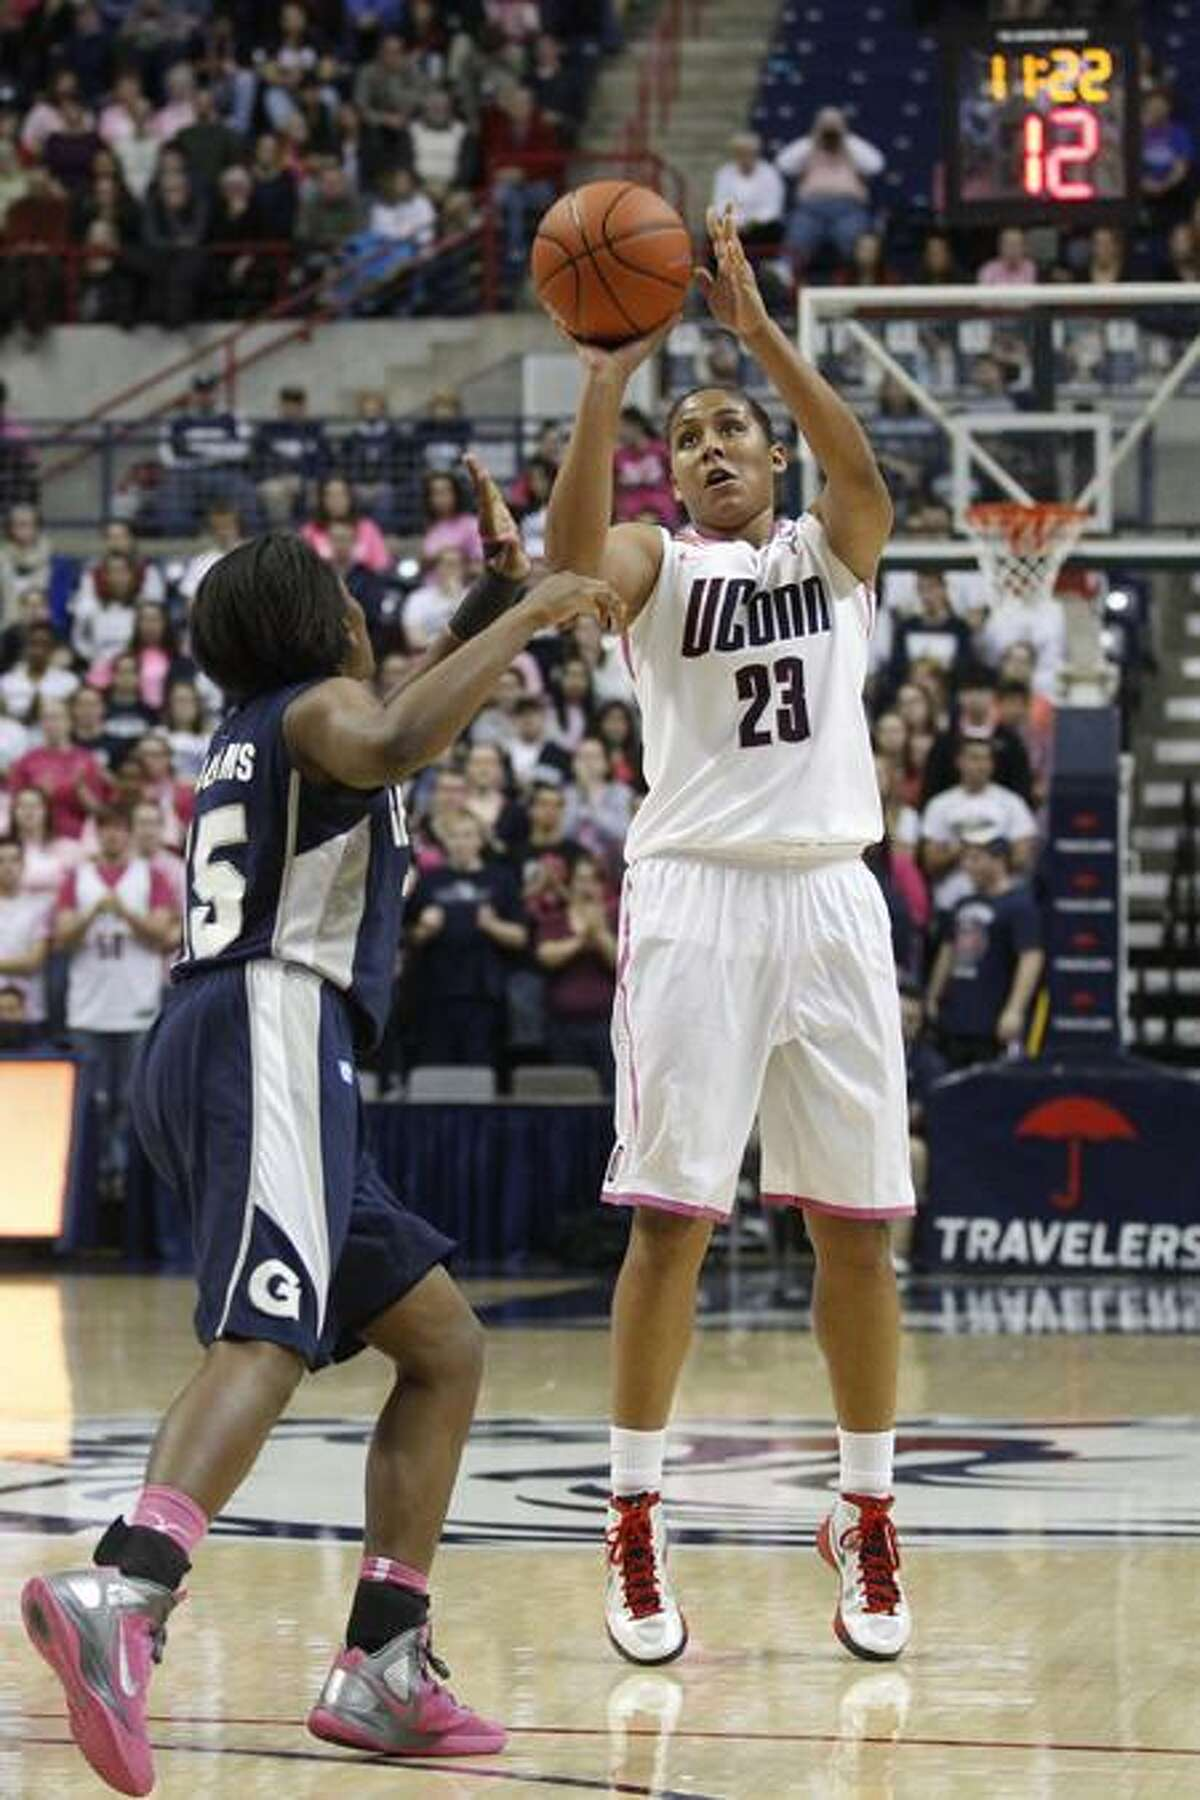 Feb 11, 2012; Storrs, CT, USA; Connecticut Huskies forward Kaleena Mosqueda-Lewis (23) shoots the ball in the second half against Georgetown Hoyas guard Morgan Williams (15) at Gampel Pavilion. UConn defeated the Georgetown Hoyas 80-38. Mandatory Credit: David Butler II-US PRESSWIRE